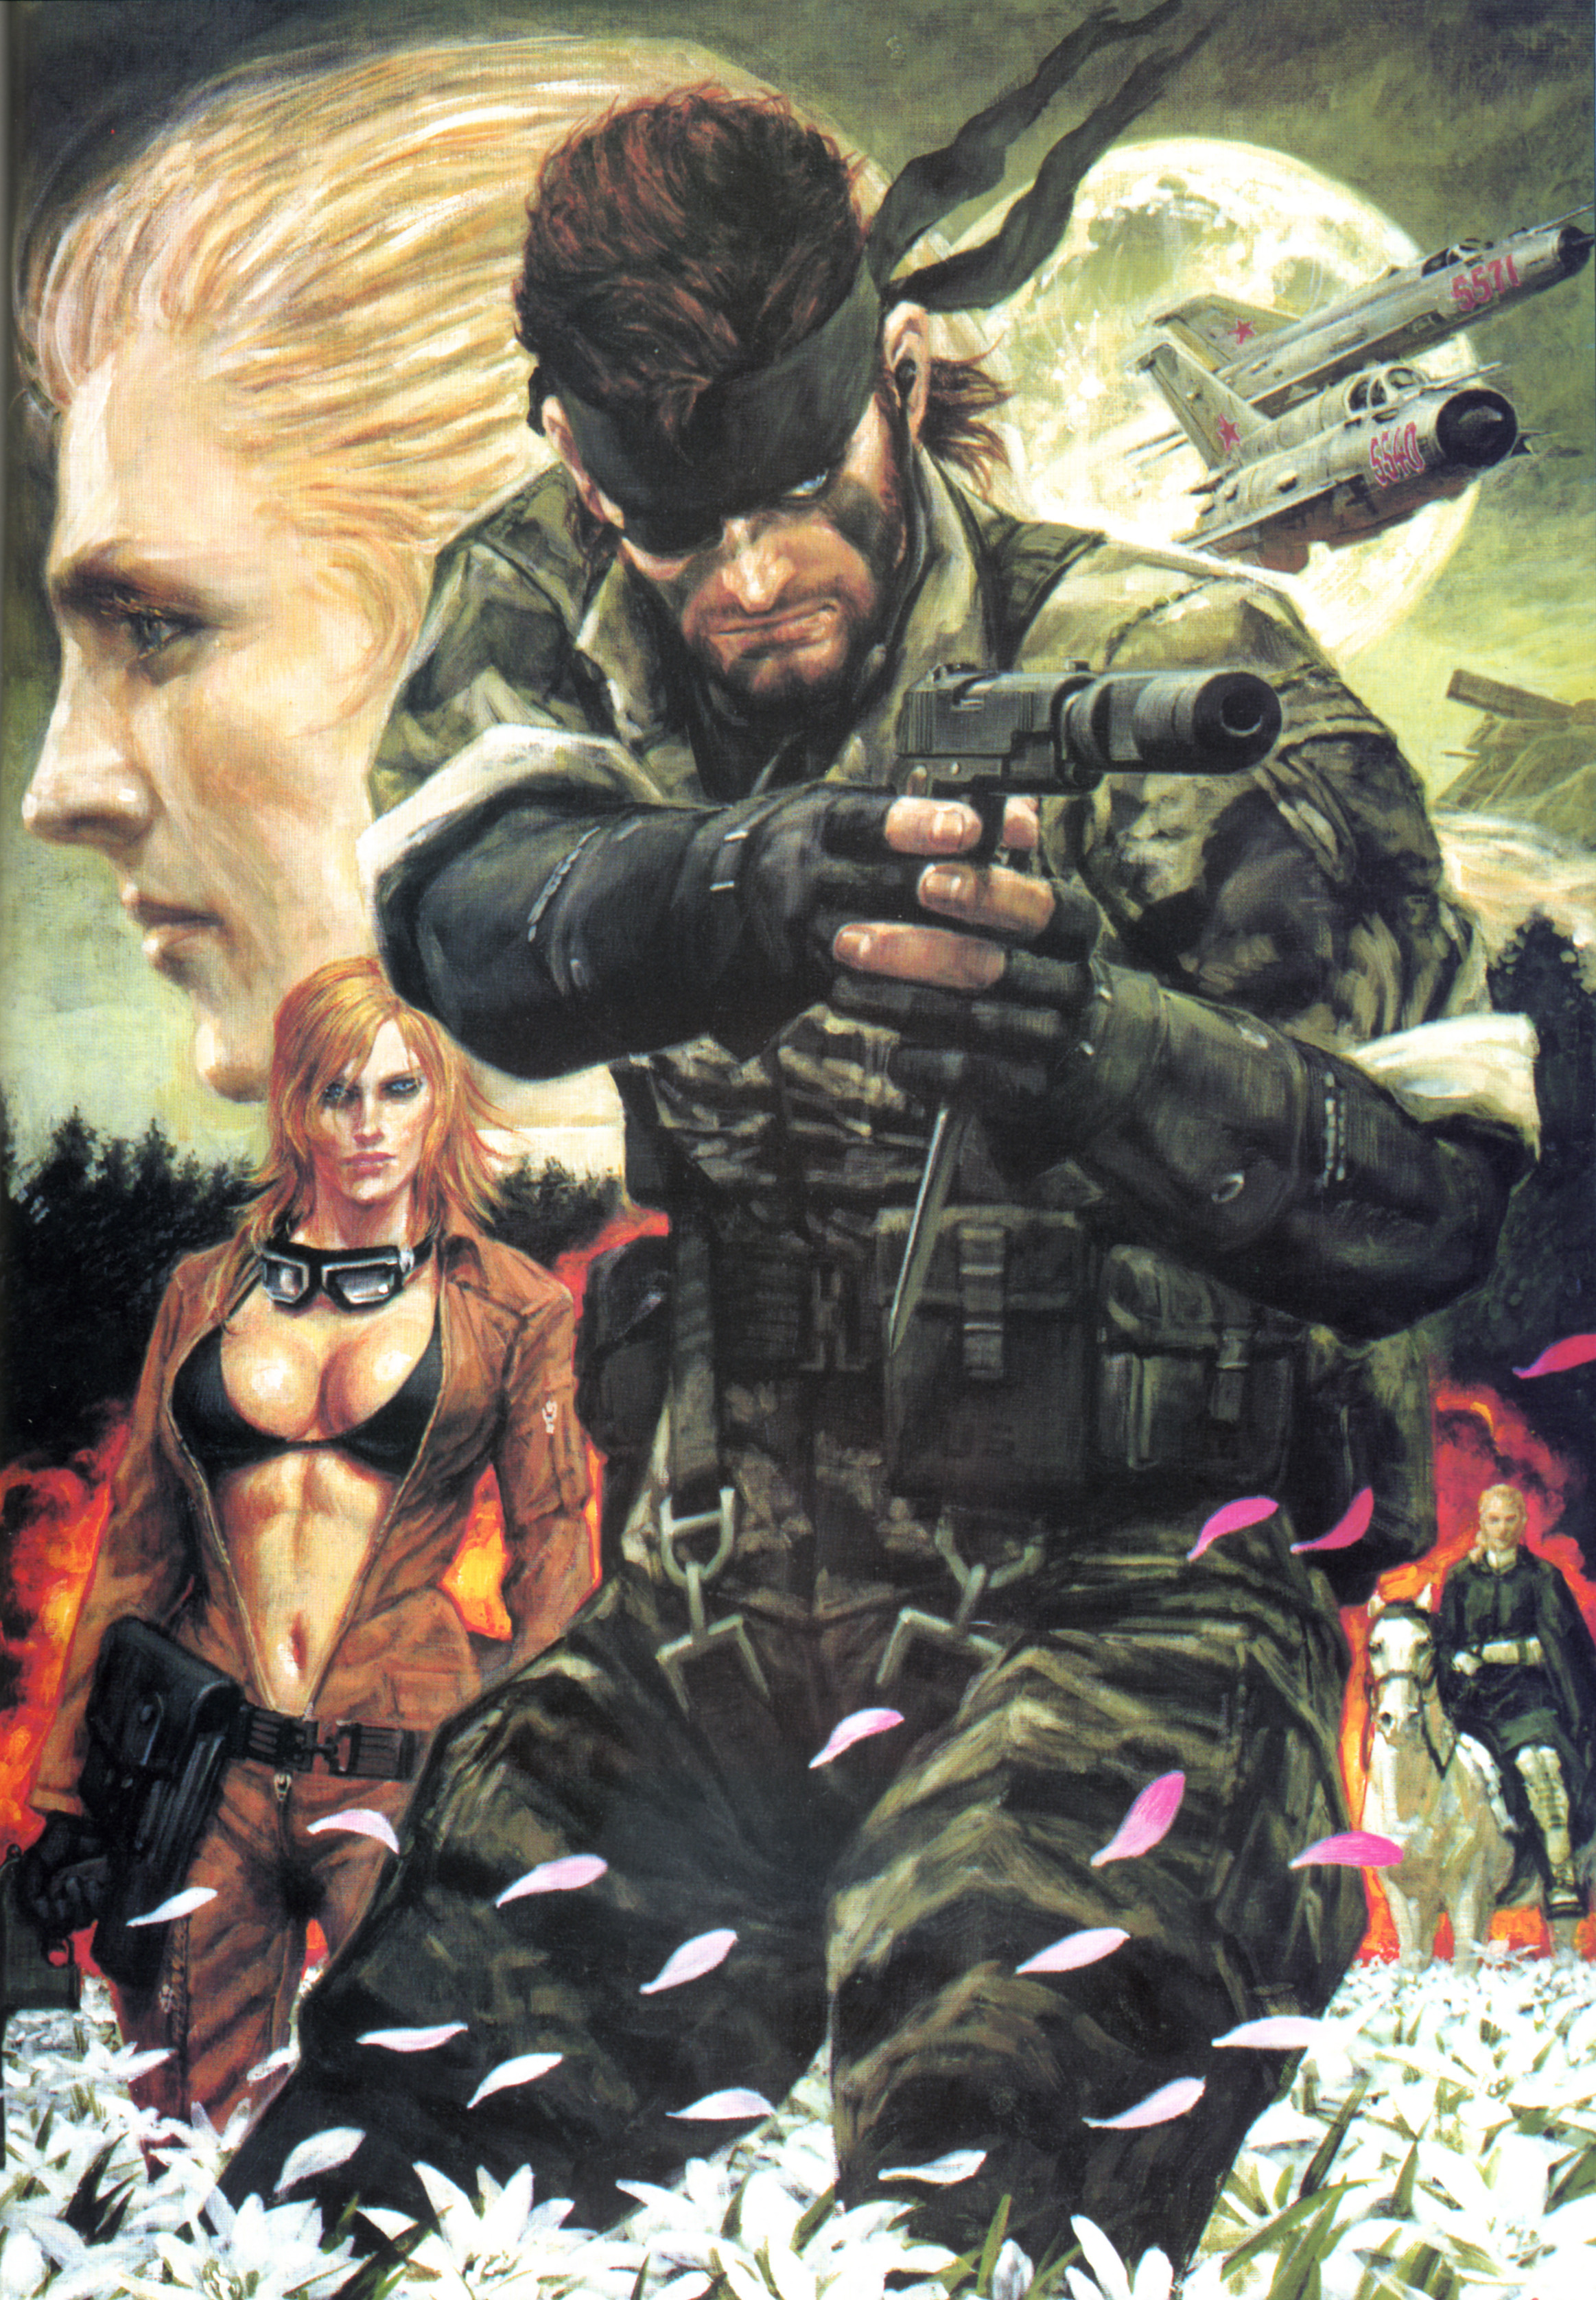 Arts - Metal Gear Solid 3: Snake Eater Big boss, Snake Eater, Арт